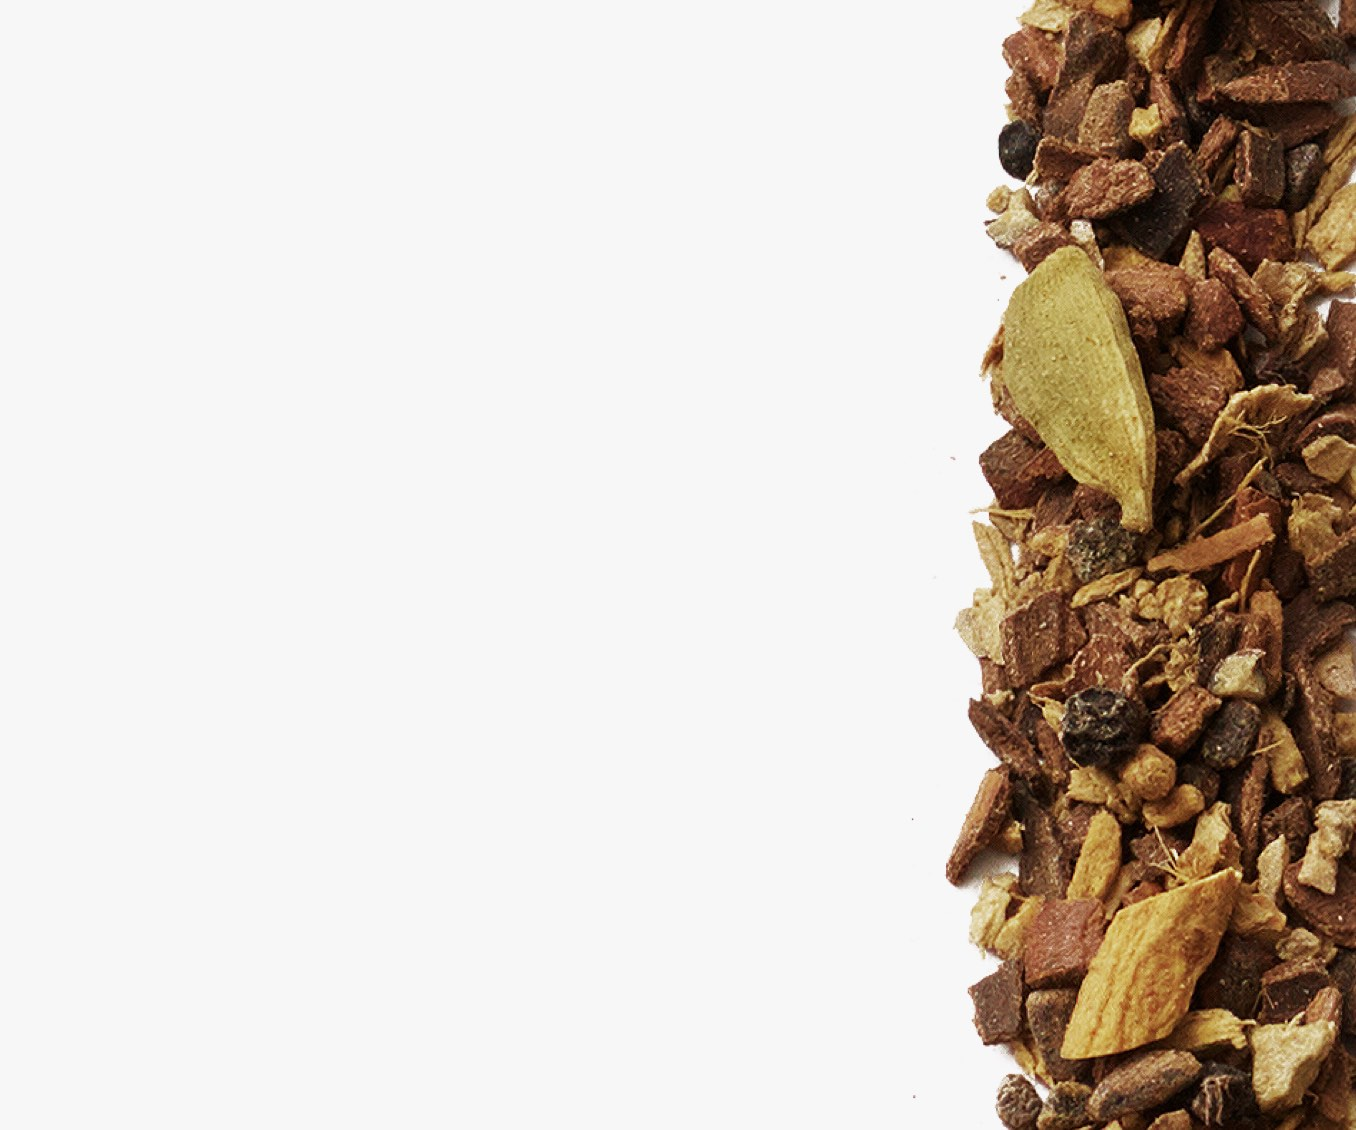 Premium loose leaf chai blend featuring traditional spices like cardamom, cinnamon, clove.